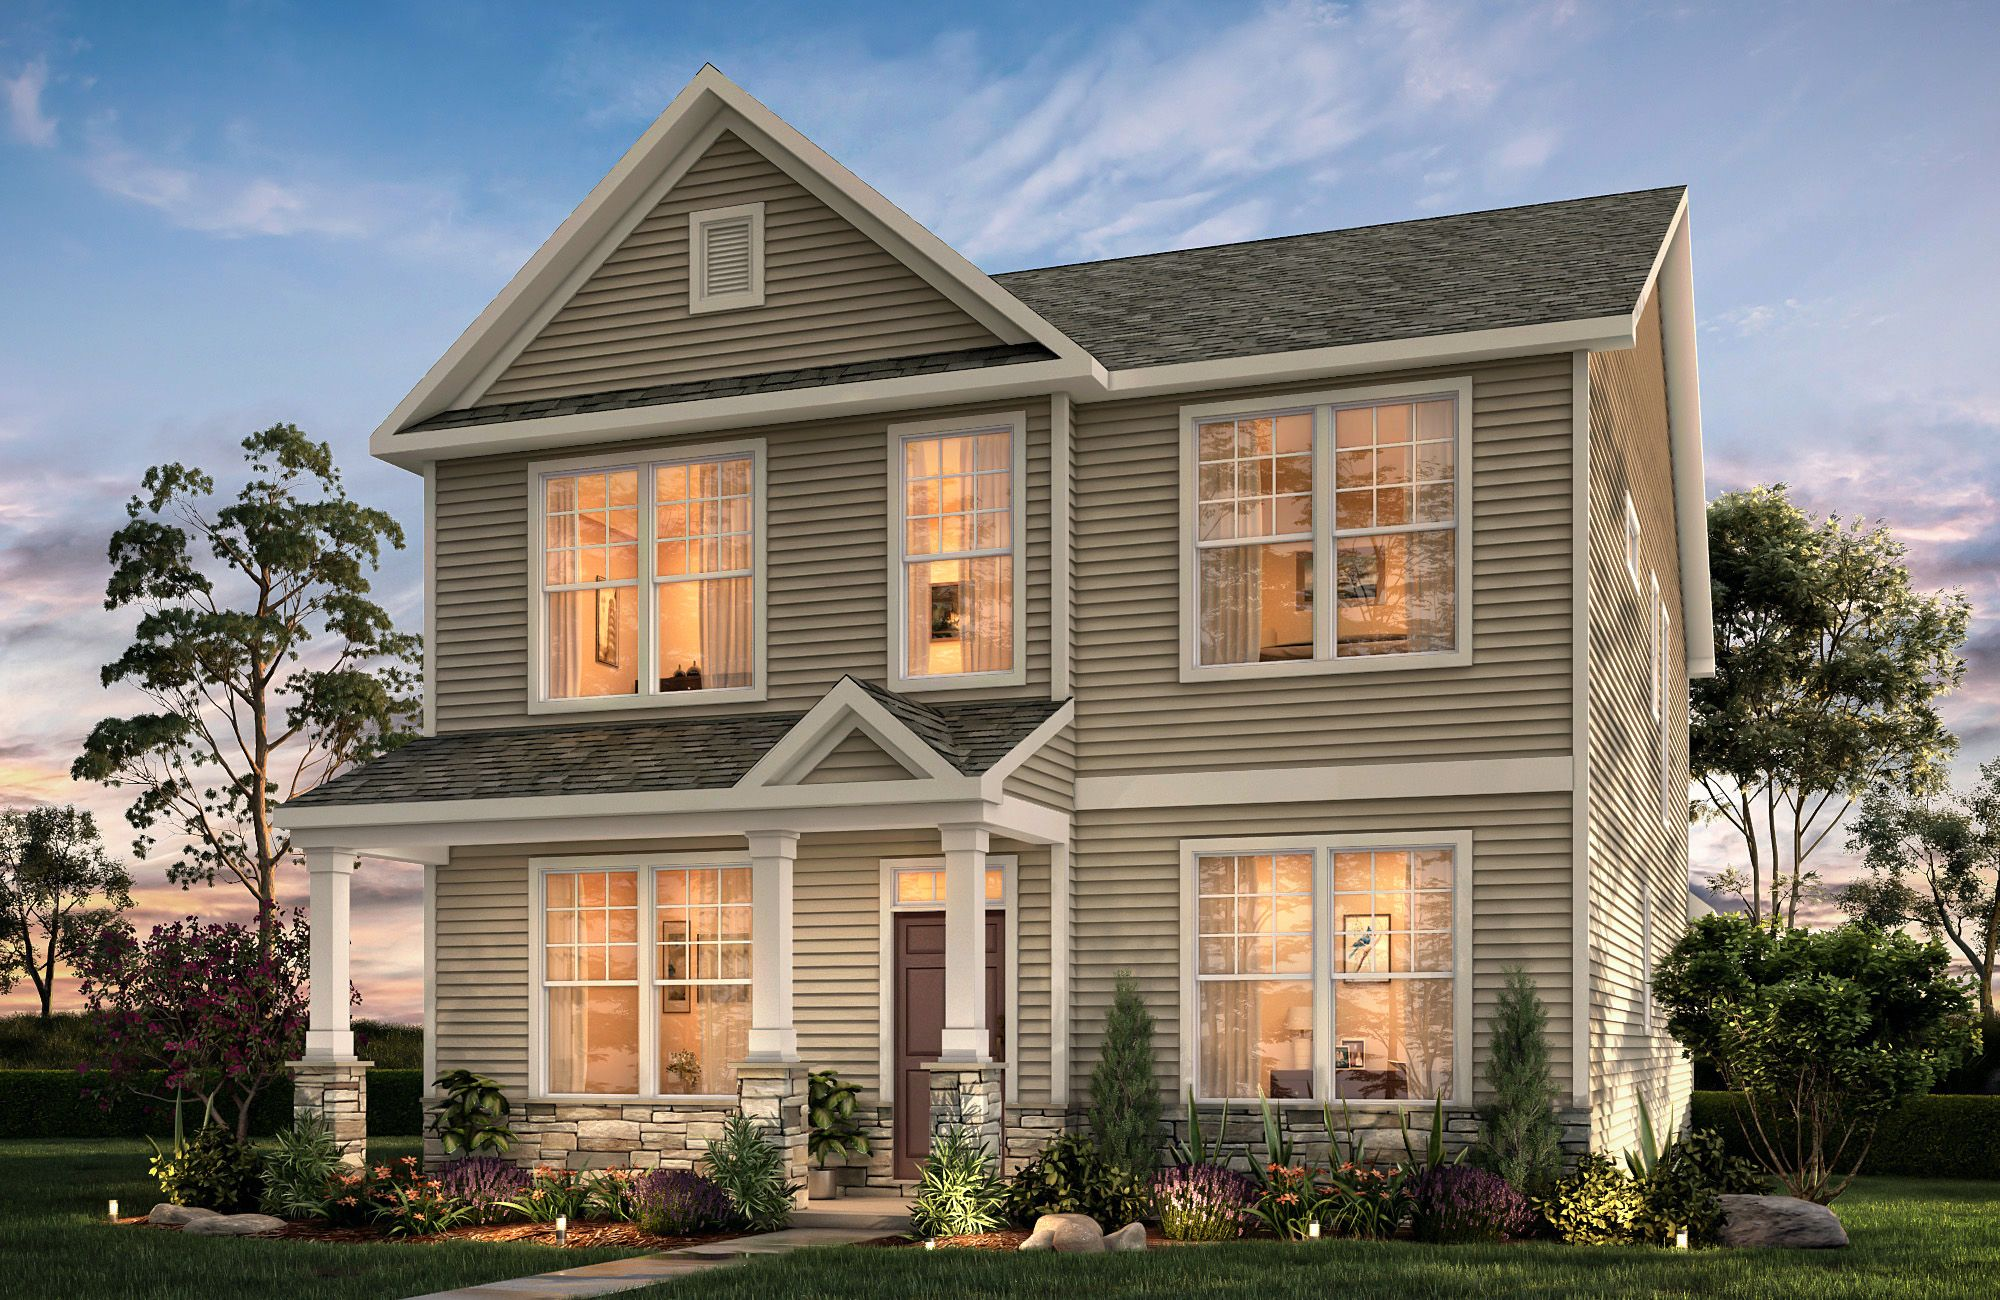 Addison Ii Tup A2p True Homes New Home Communities New Home Builders